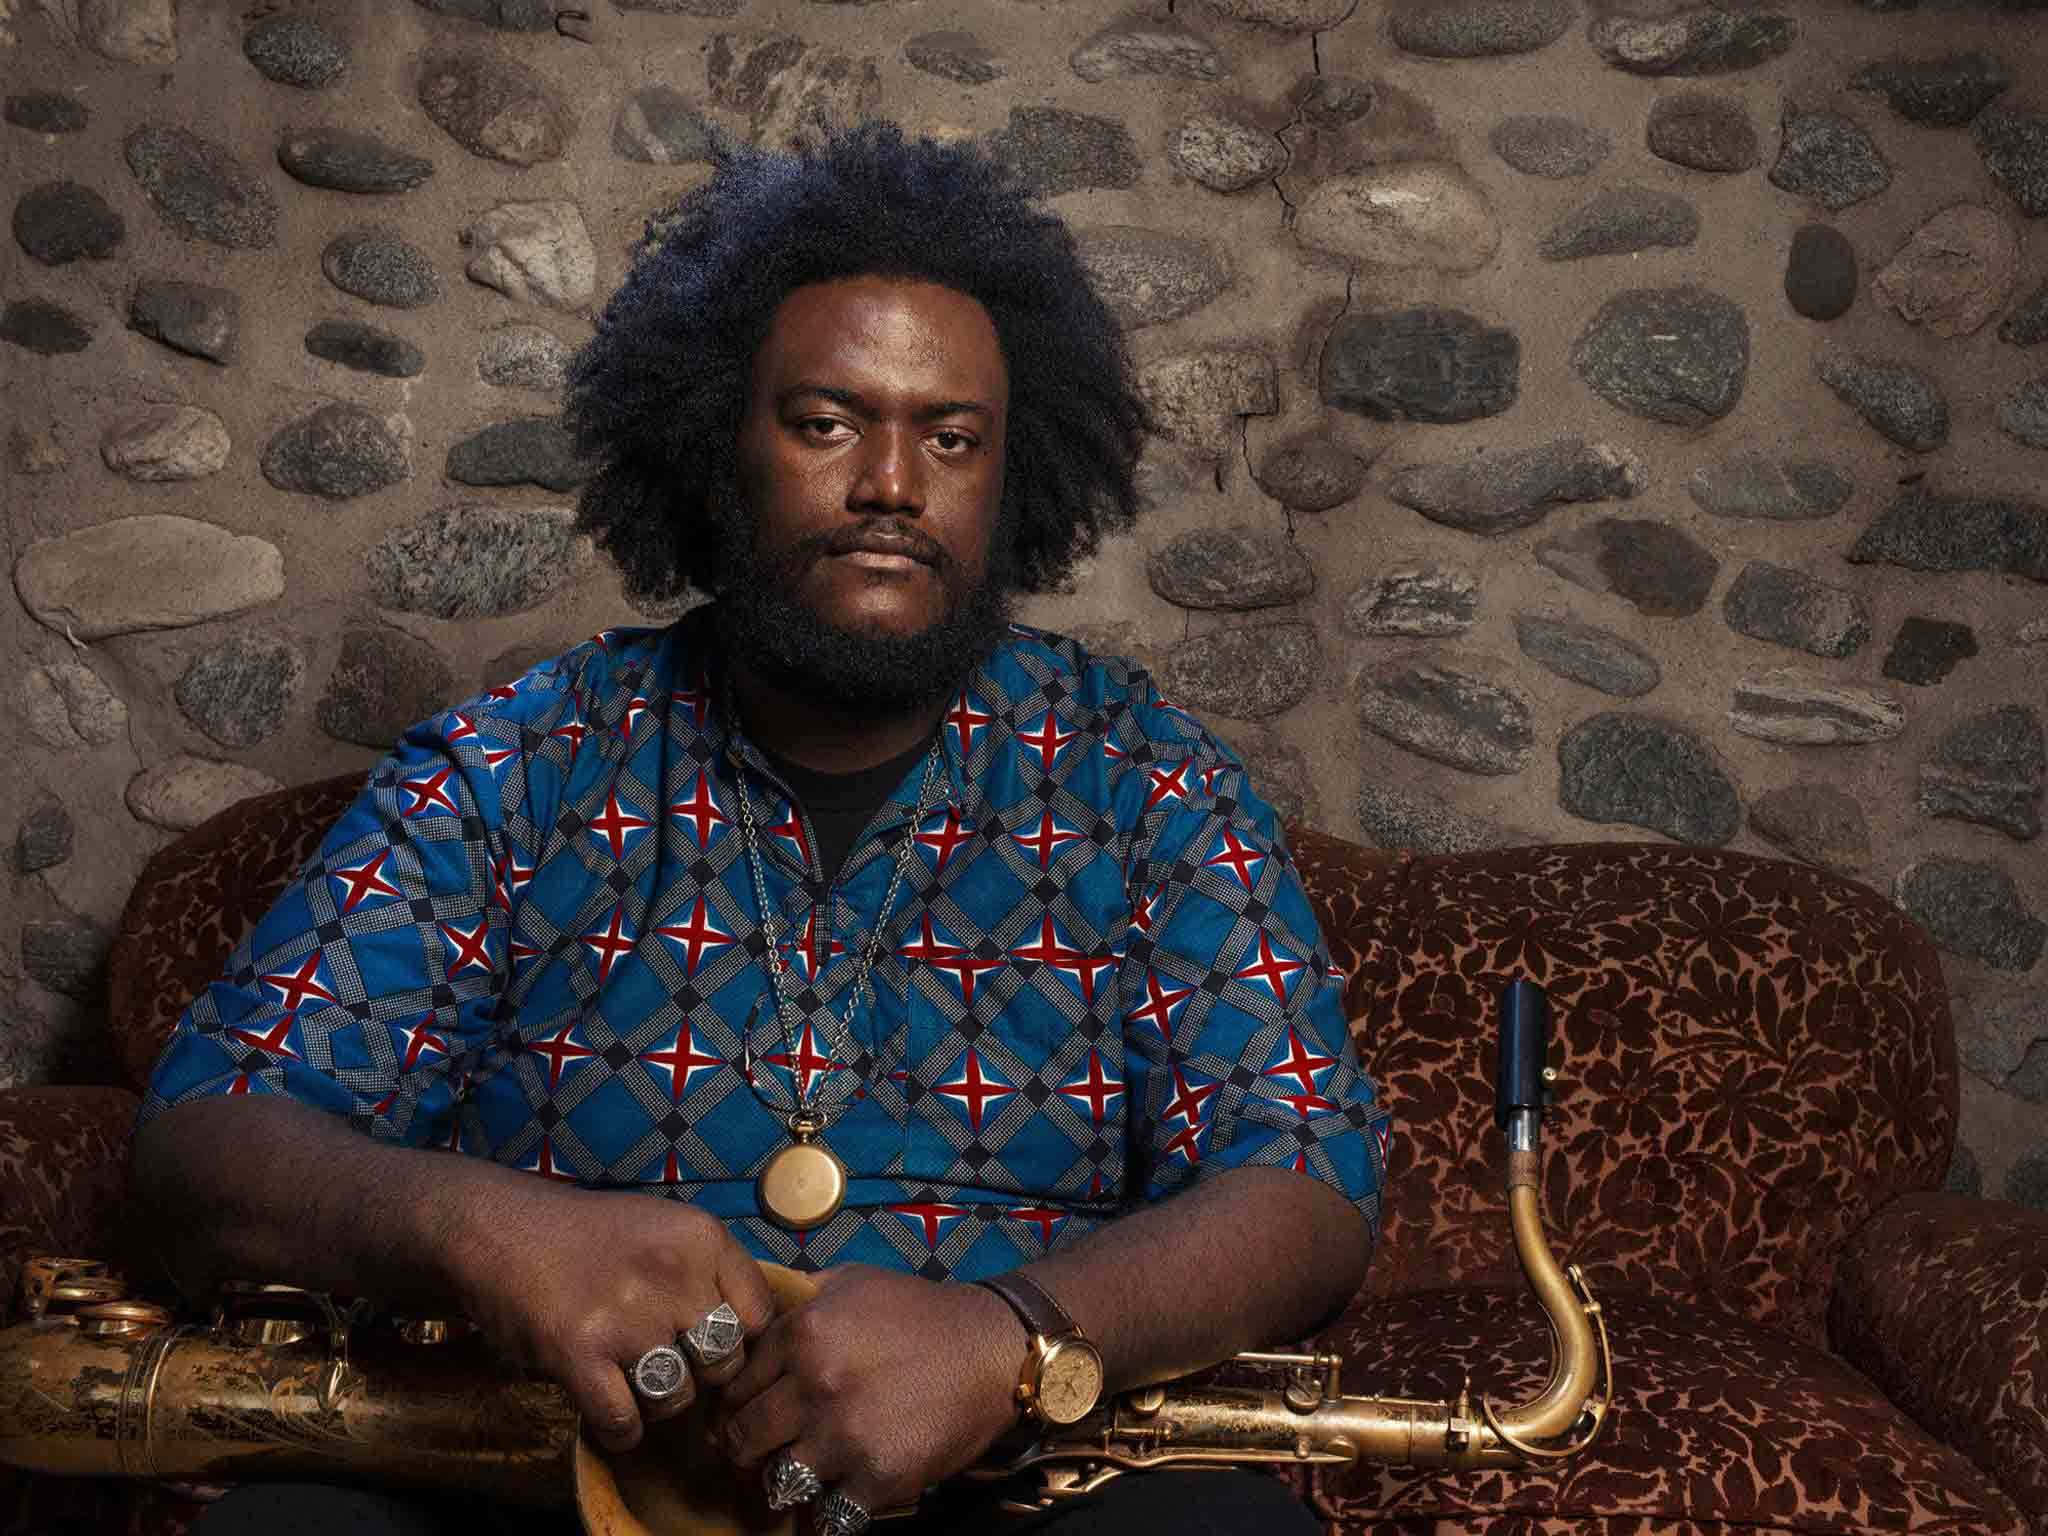 The 50 best albums of 2015 - Kamasi Washington - 'The Epic'